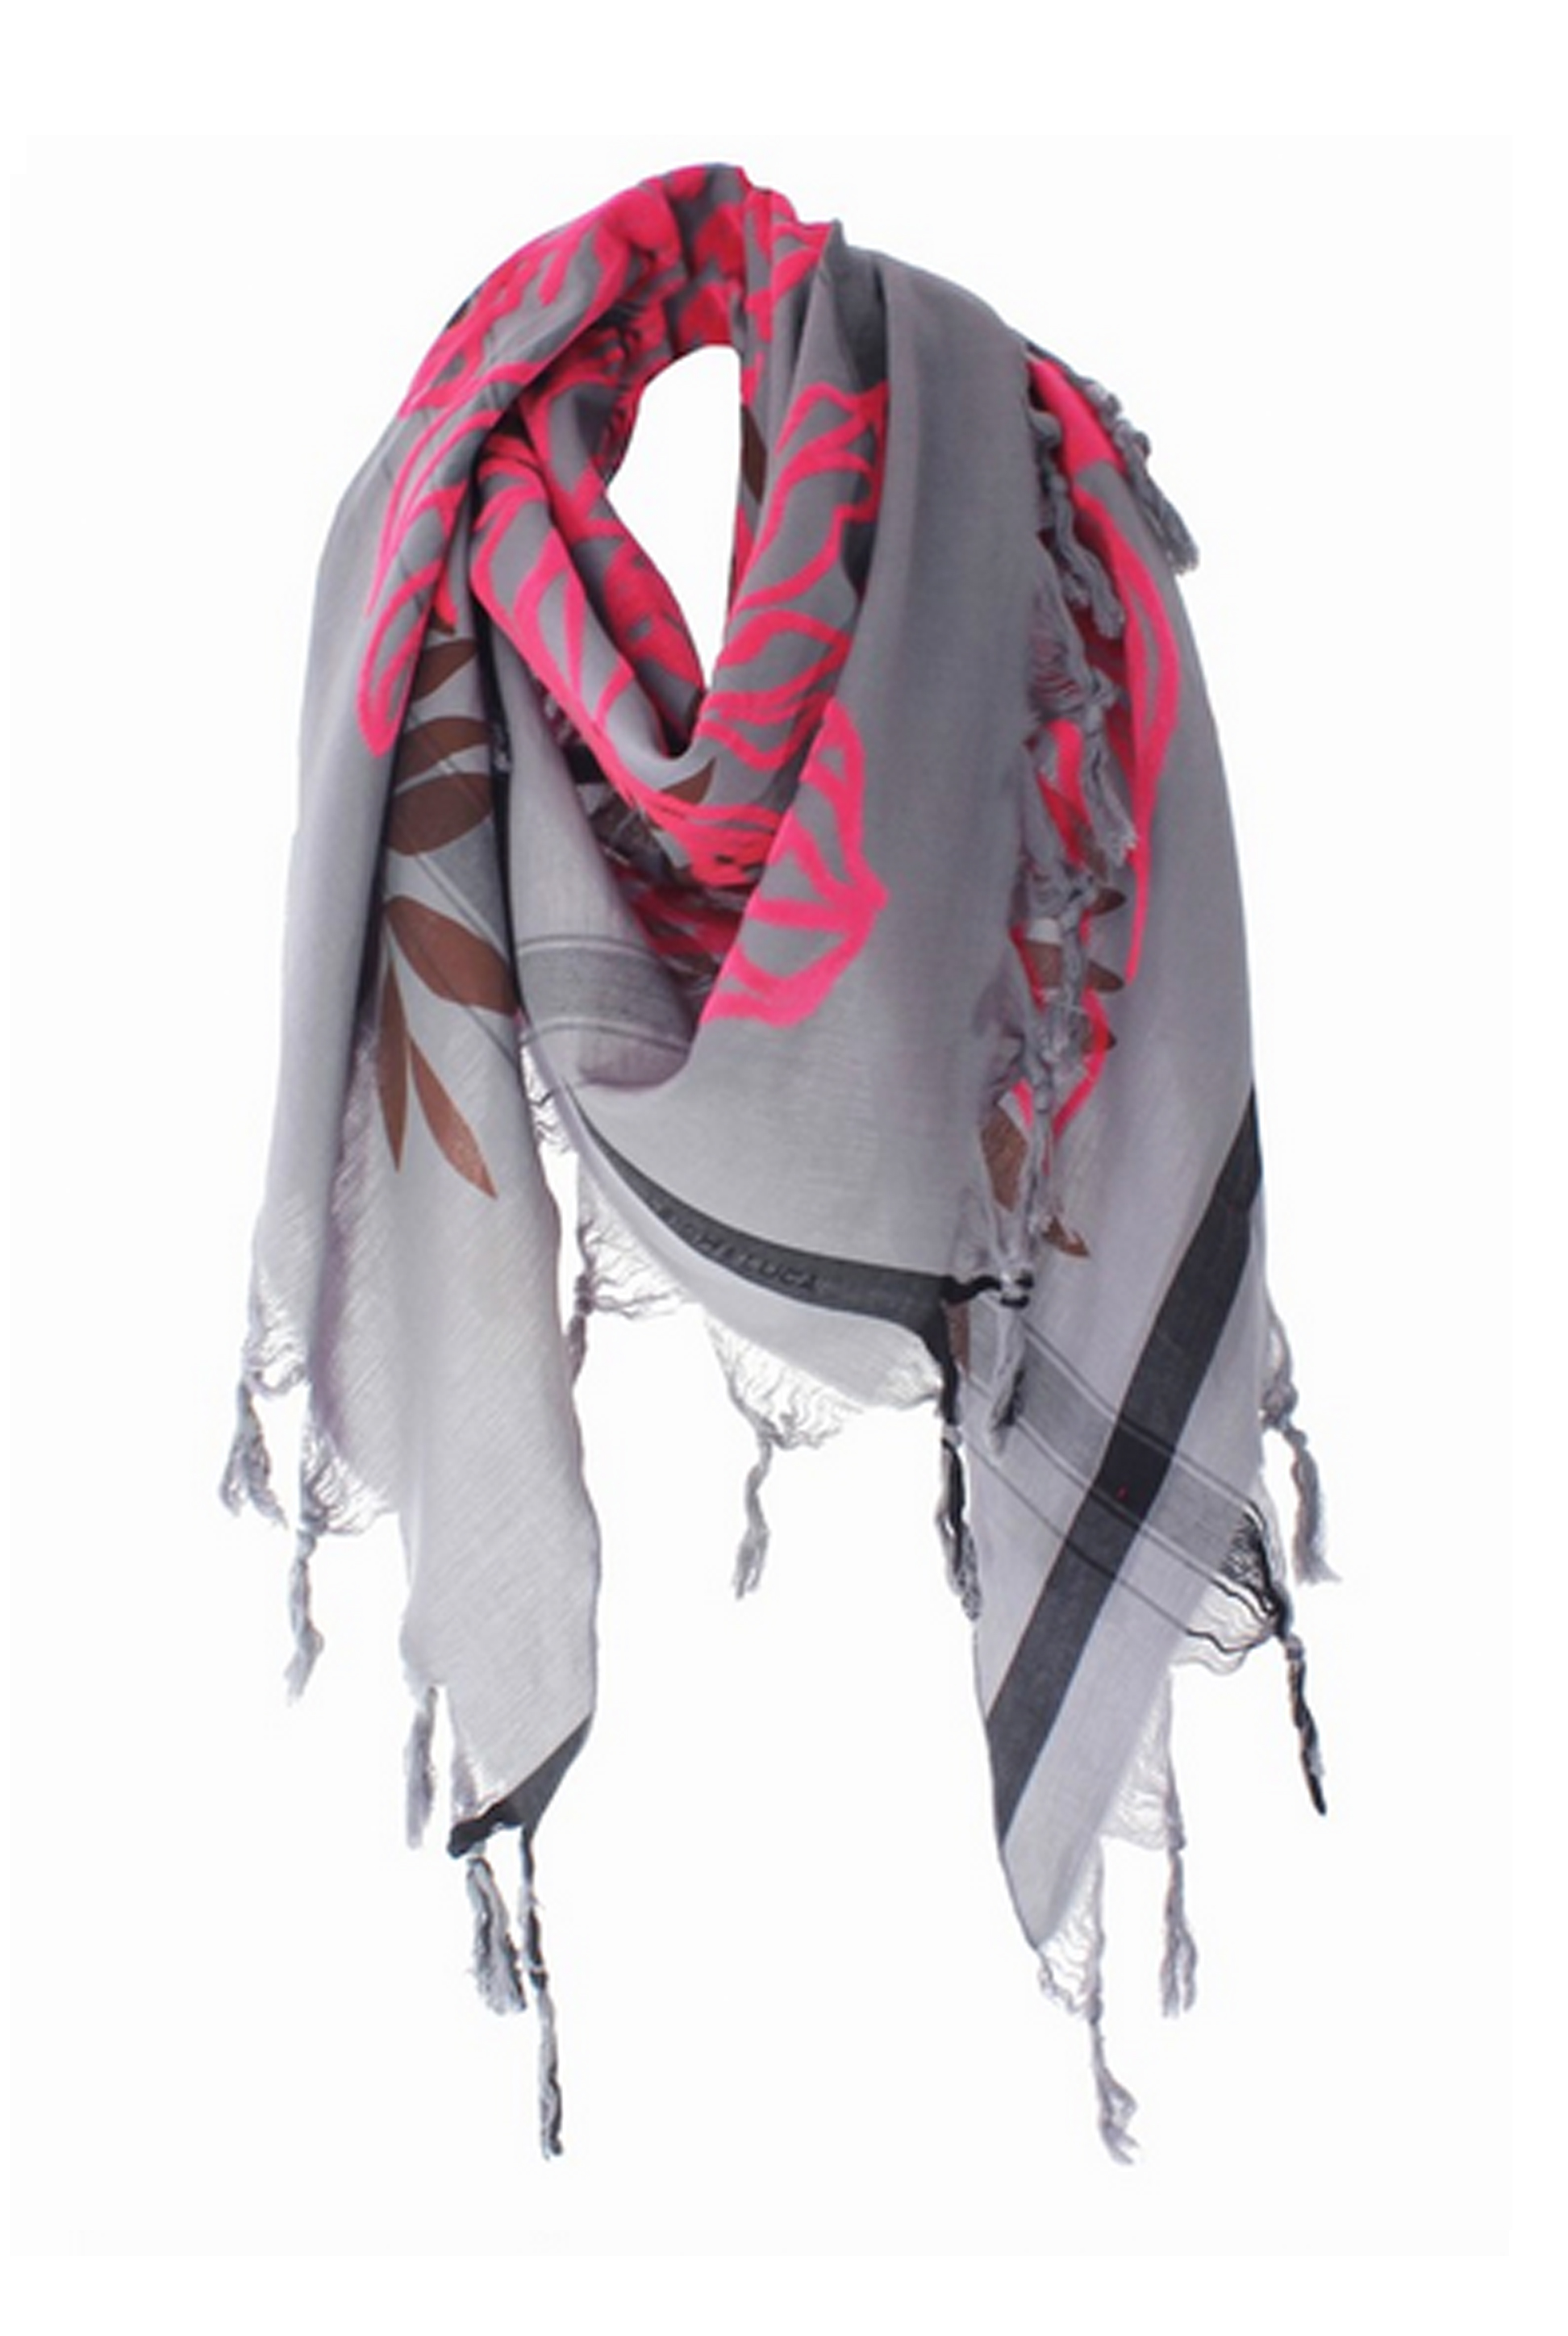 Pixel Leaves Pink Triangle Scarf